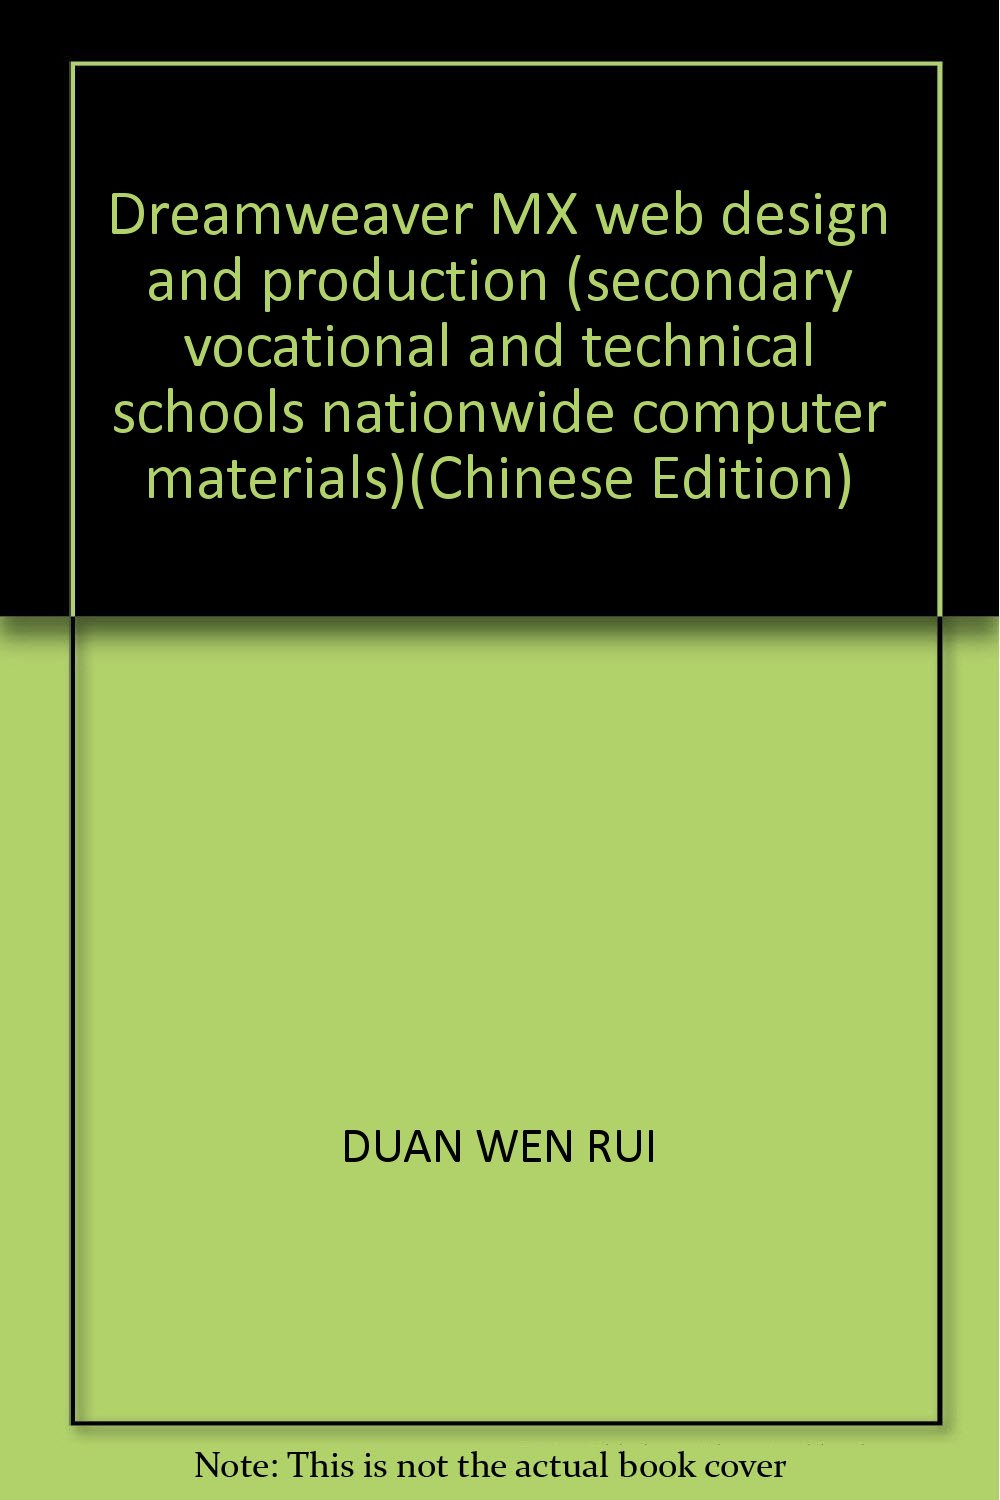 Download Dreamweaver MX web design and production (secondary vocational and technical schools nationwide computer materials)(Chinese Edition) ebook